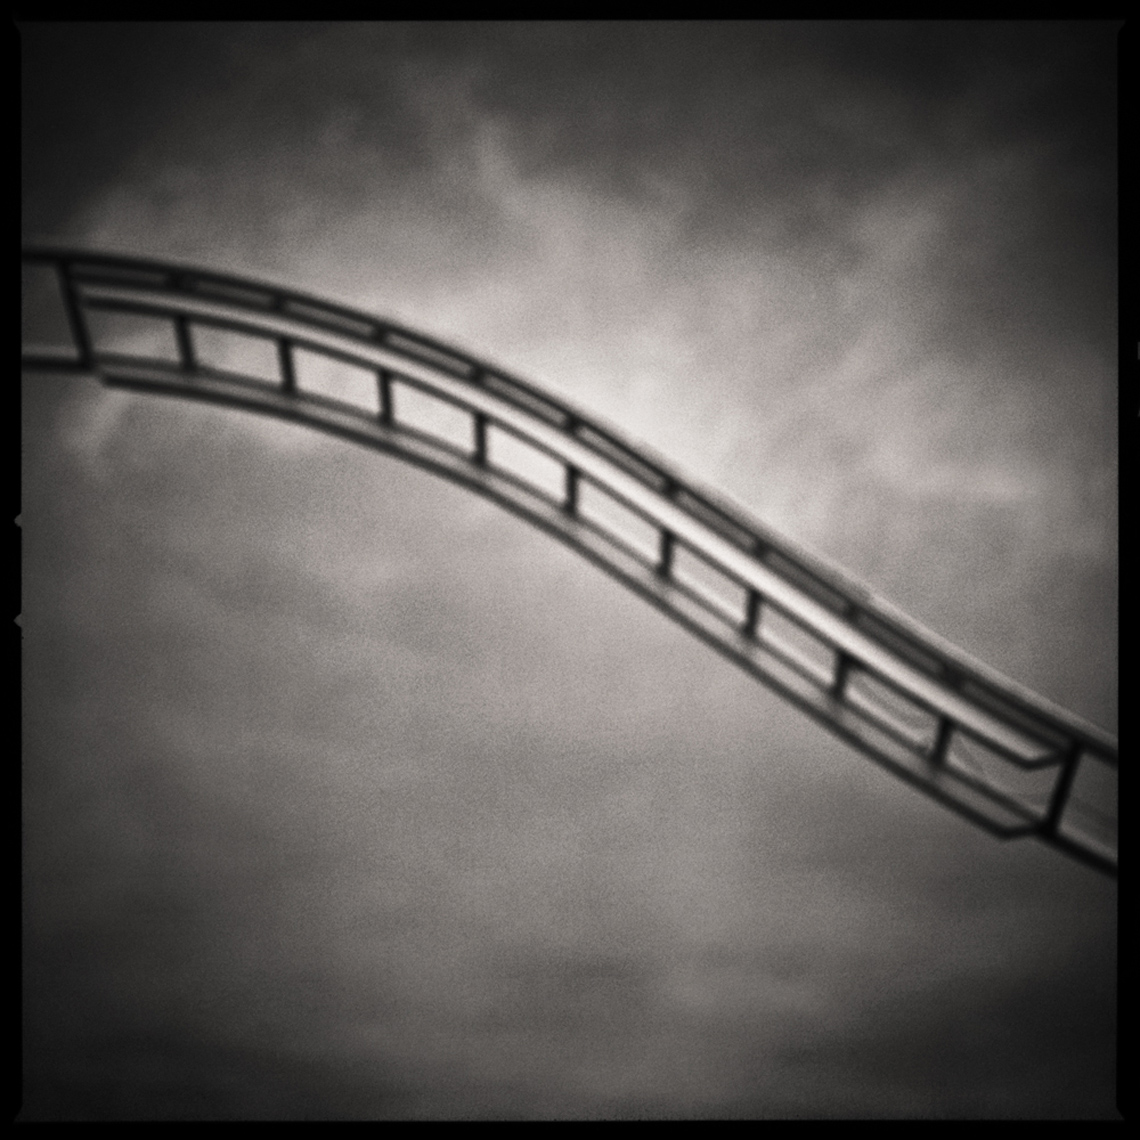 Sean Perry Photographs • Up the Ladder Down, from the series Fairgrounds